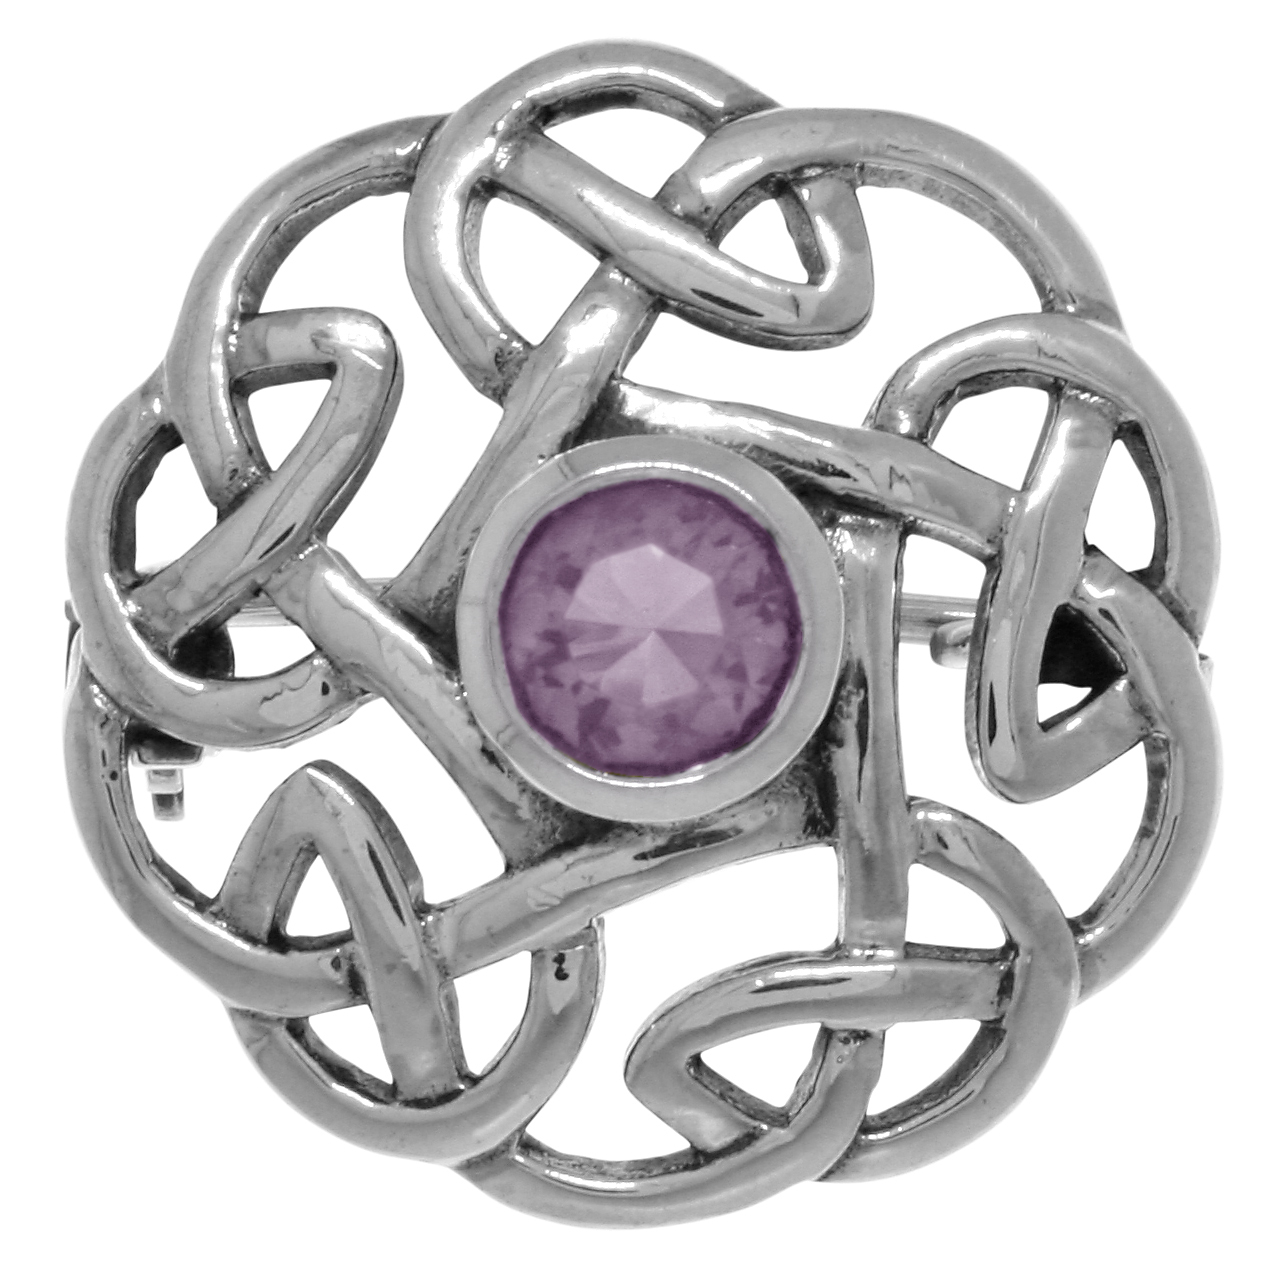 Jewelry Trends Sterling Silver Round Celtic Thistle Brooch Pin with Purple Amethyst by